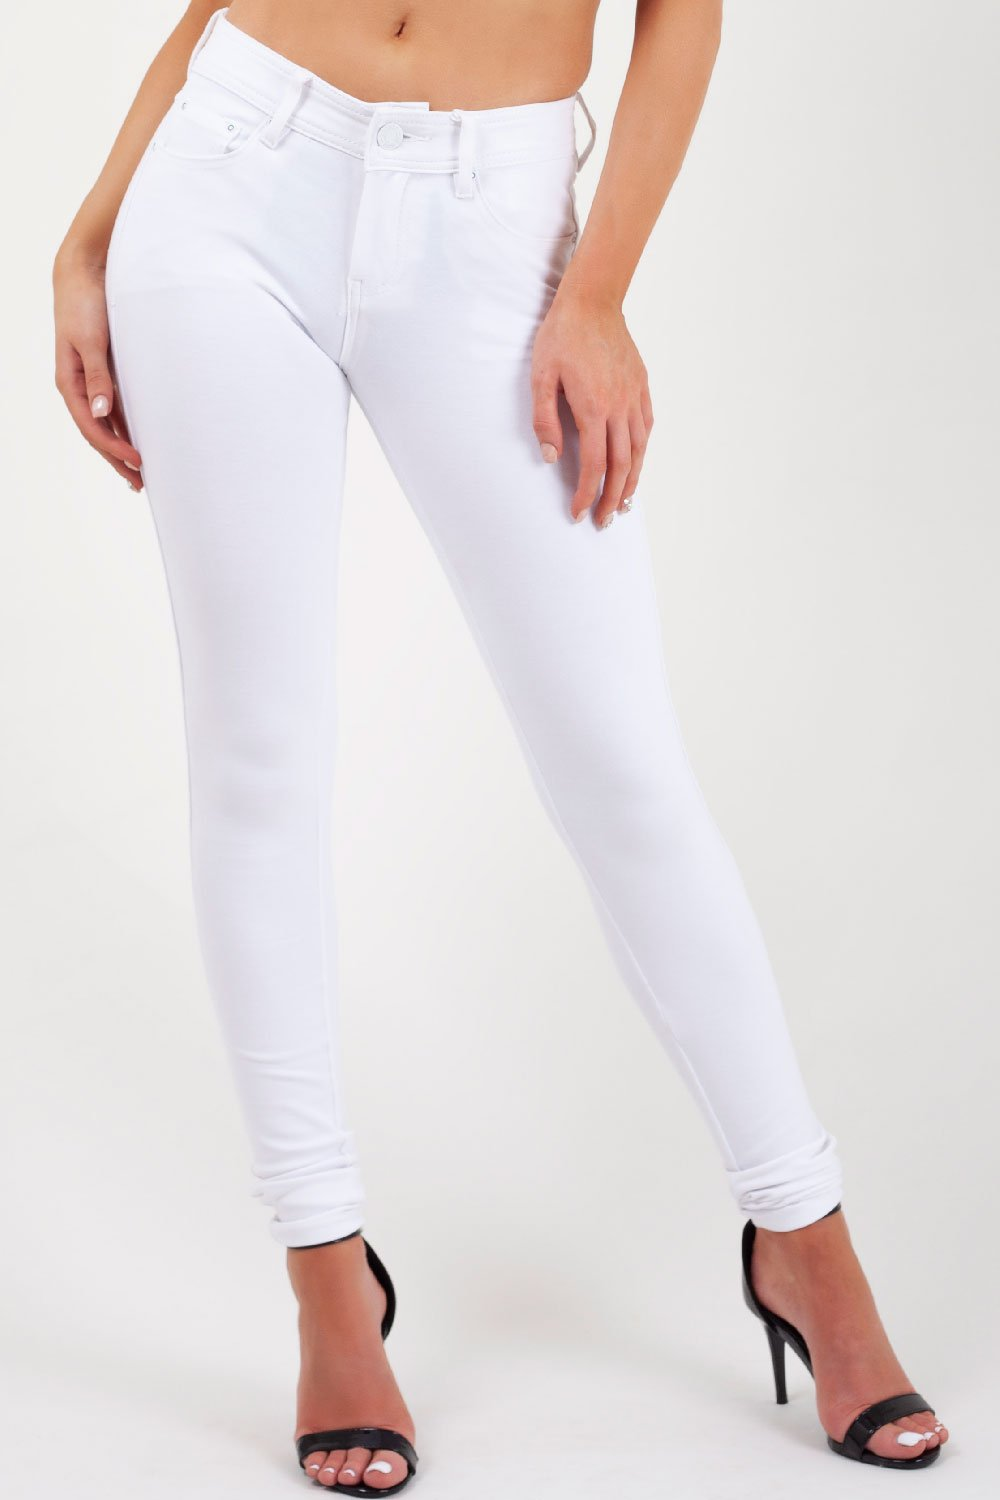 white jeggings uk